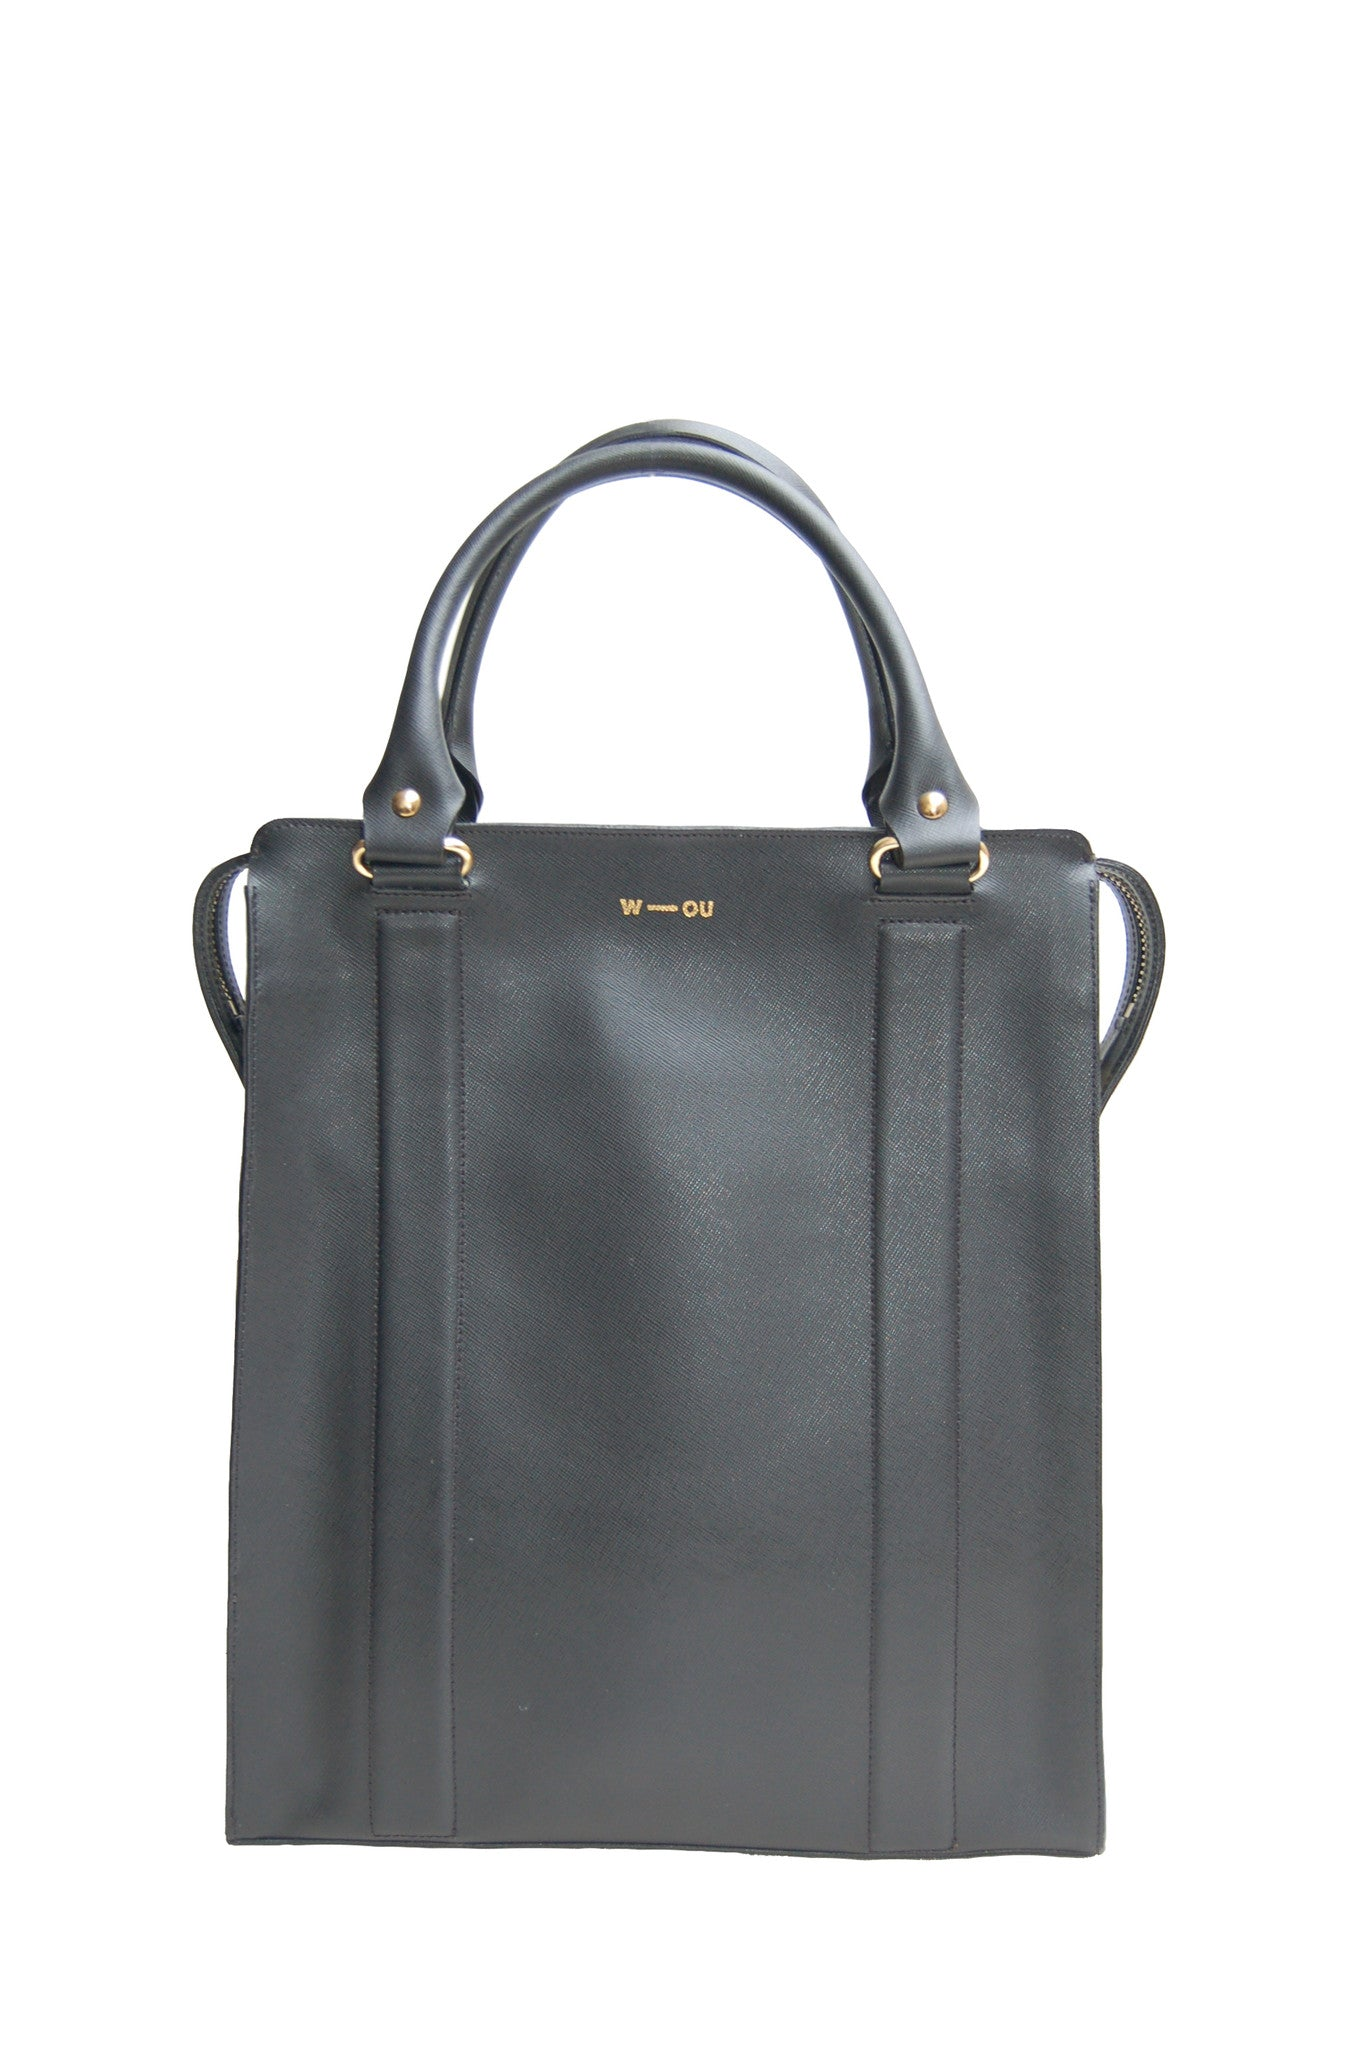 Wendee Ou: Ziggy structured bag black - Hiphunters Shop